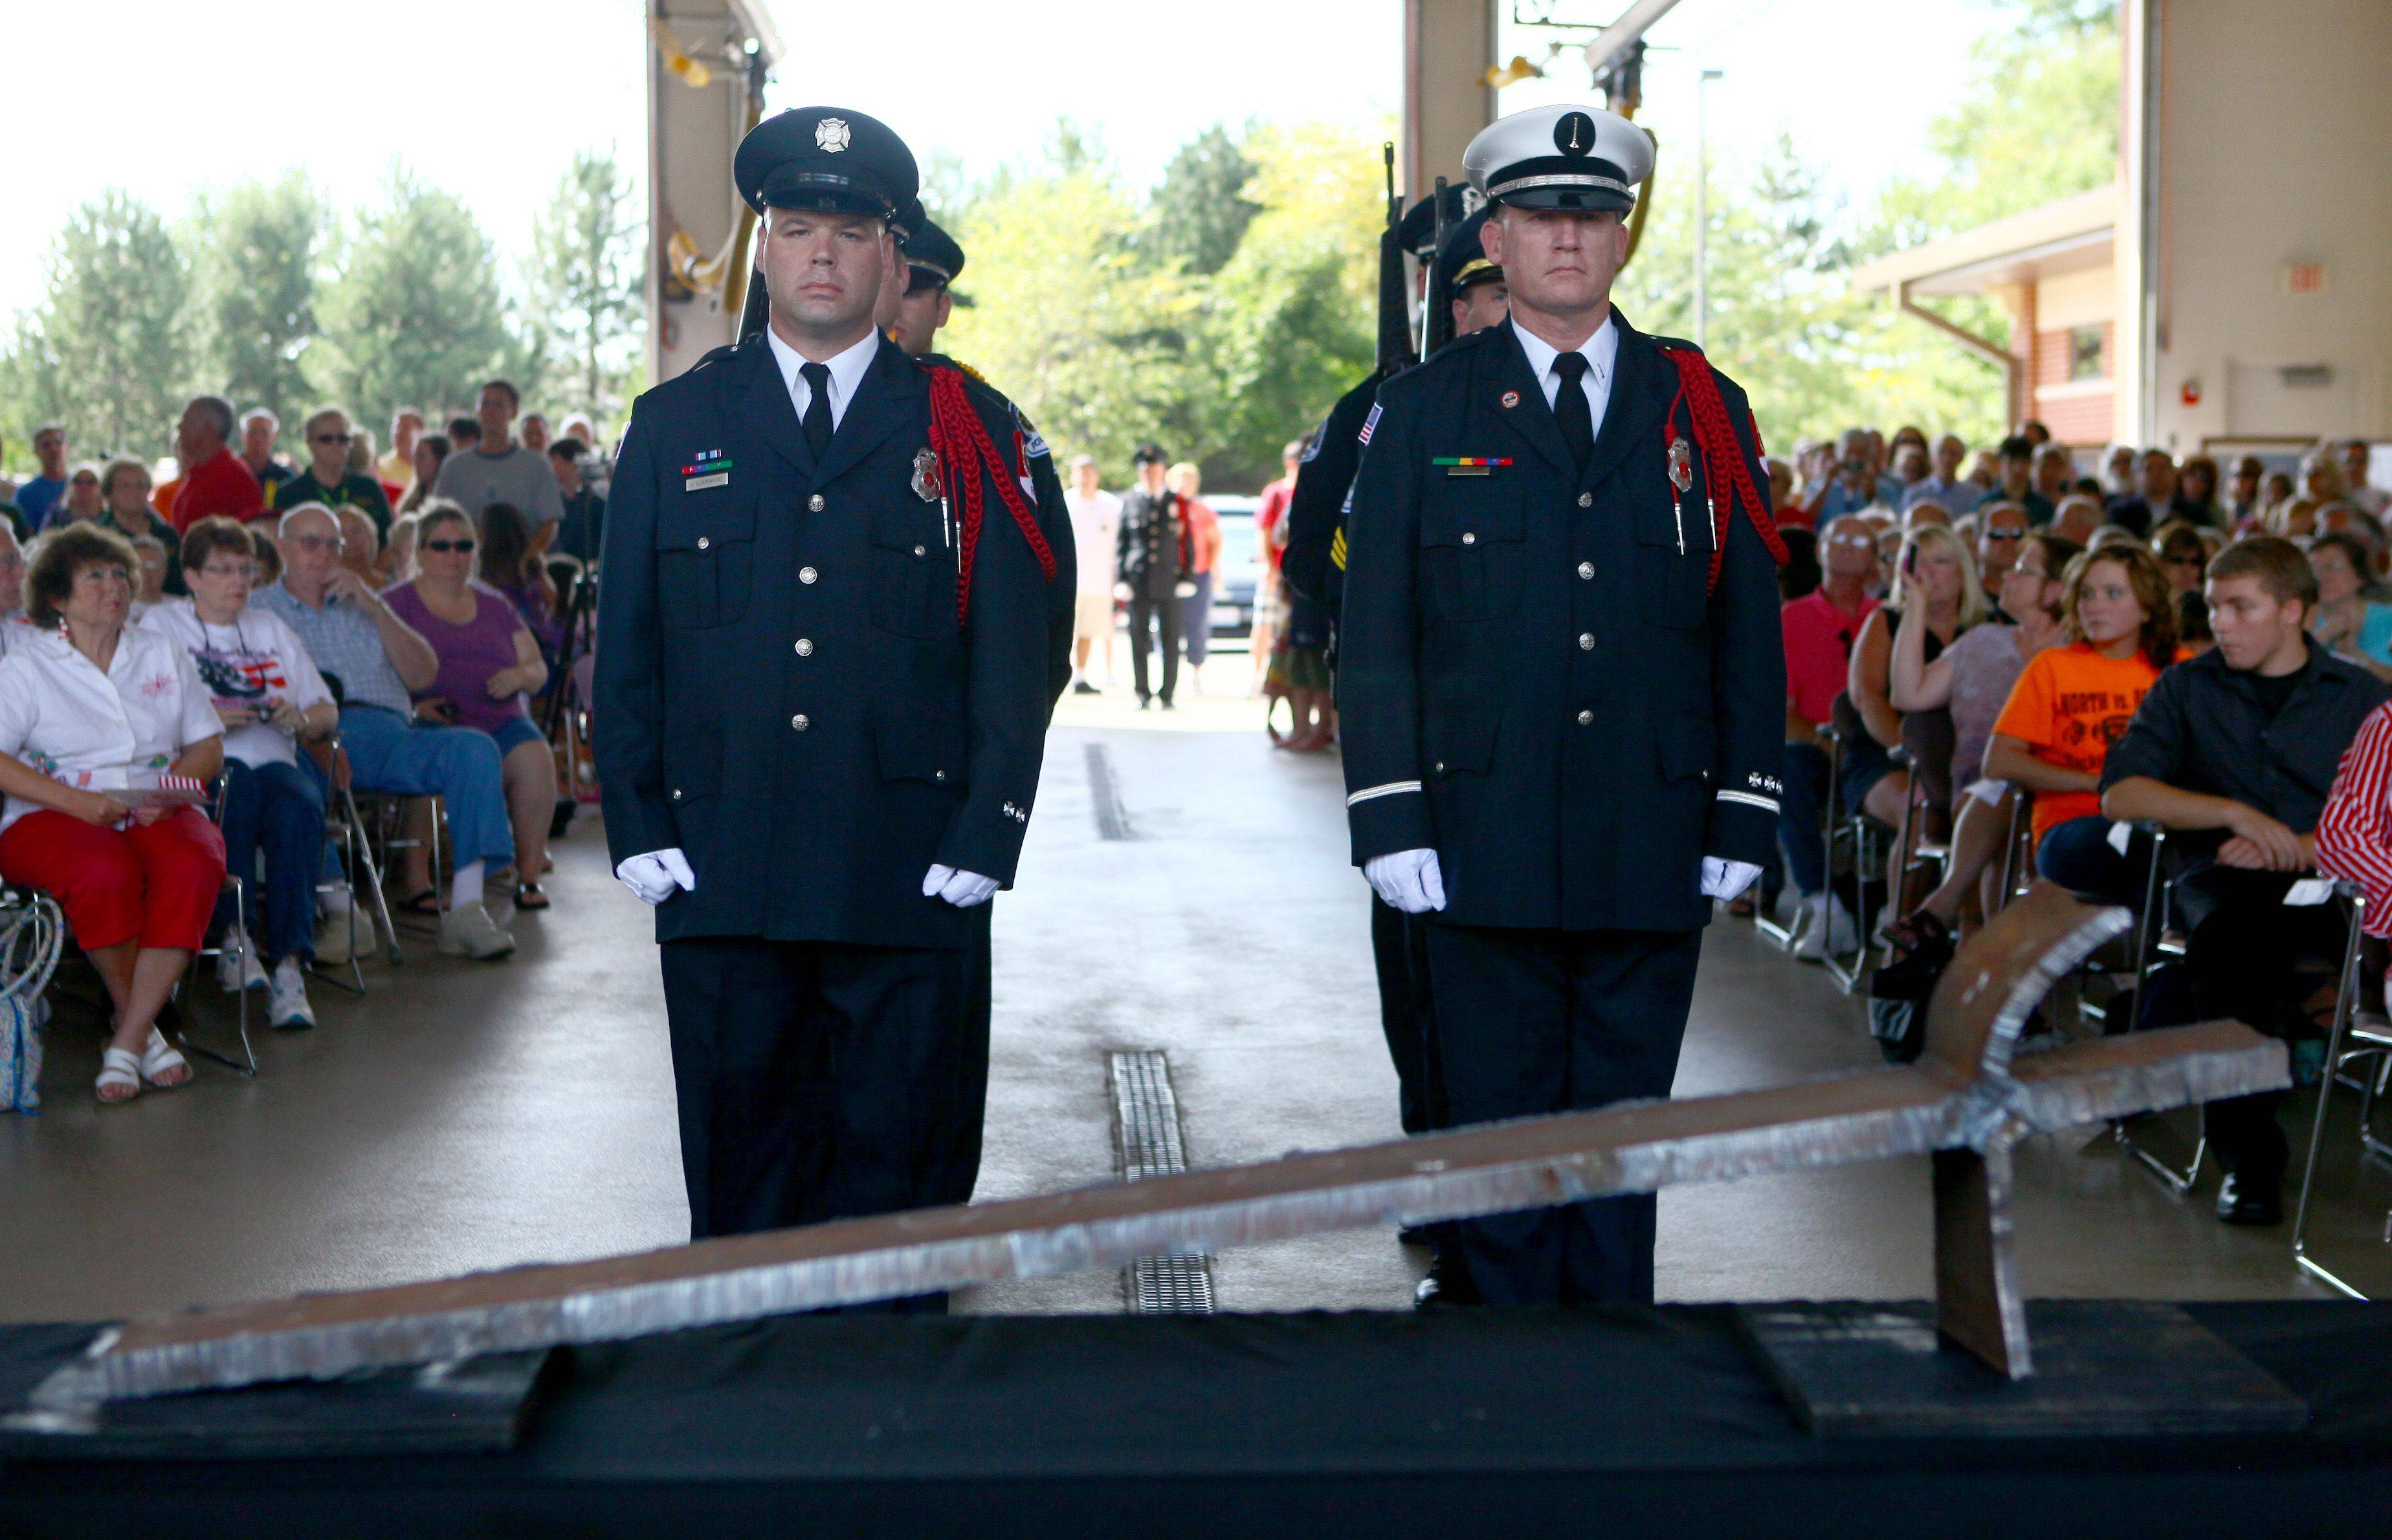 Firefighters Jeremy Lockwood, left, and Phil McGuire, stand in front of the piece of steel taken from the World Trade Center rubble during a 9/11 10th anniversary ceremony Sunday in Mundelein.